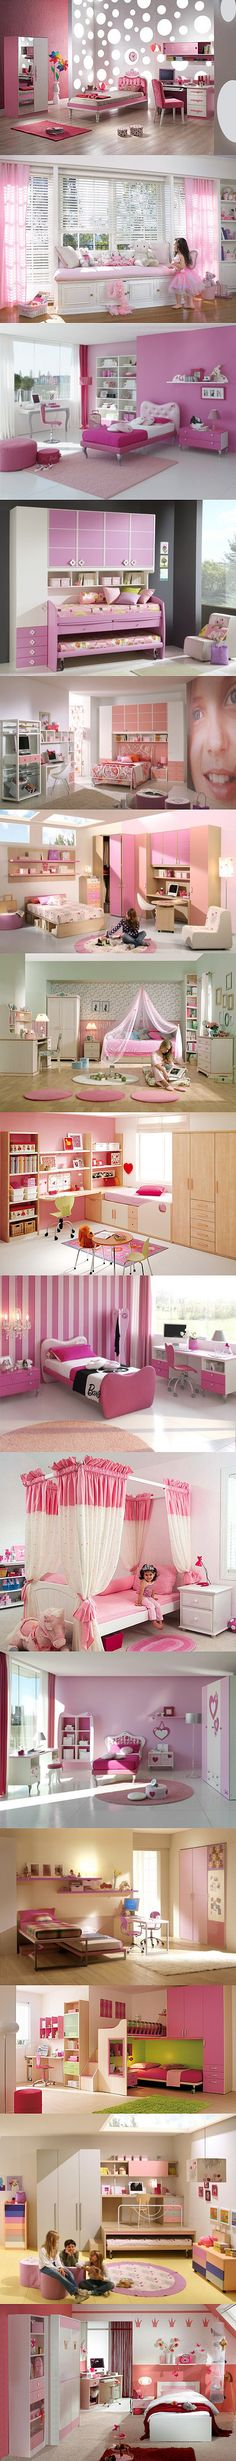 For my future baby girls in our ranch house😍 Baby Bedroom, Girls Bedroom, Bedroom Decor, Toddler Room Organization, Ideas Dormitorios, Girl Bedroom Designs, Princess Room, Pink Room, Awesome Bedrooms